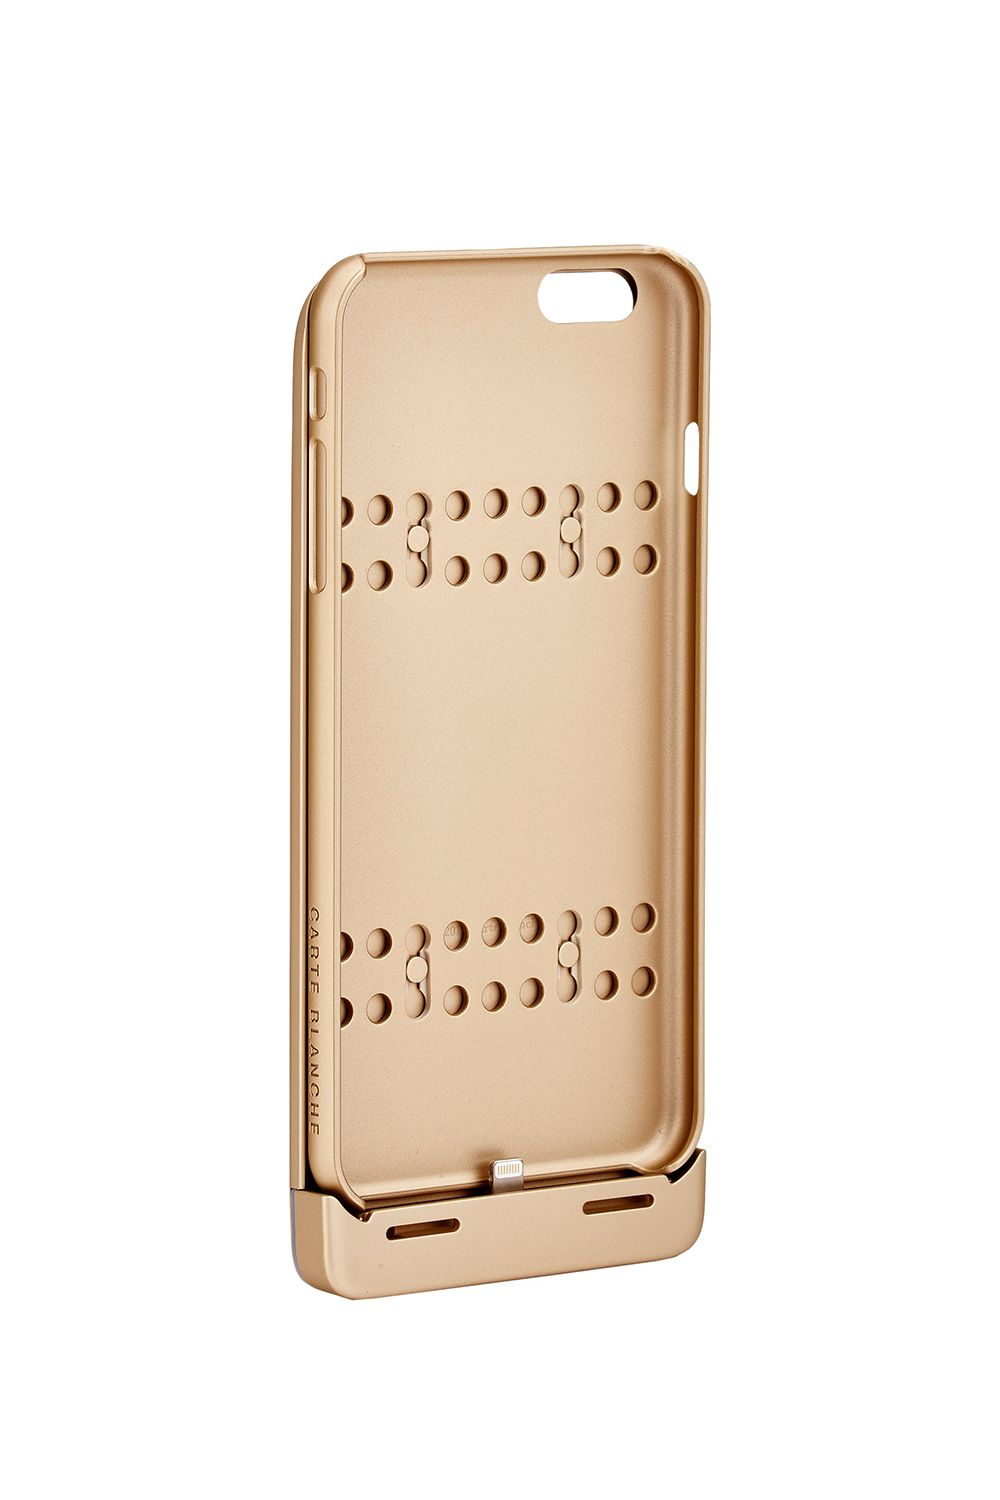 "<p>The dream in phone case form: one that powers up your phone and saves it from cracks should you drop it. </p><p><strong>Boostcase iPhone 6 Plus Hybrid Power Case, $100; <a href=""https://www.amazon.com/AmazonBasics-Portable-Power-Bank-100/dp/B00ZQ4JQAA?ie=UTF8&ascsubtag=WC67037&linkCode=xm2&tag=thewire06-20"">amazon.com</a>. </strong></p>"